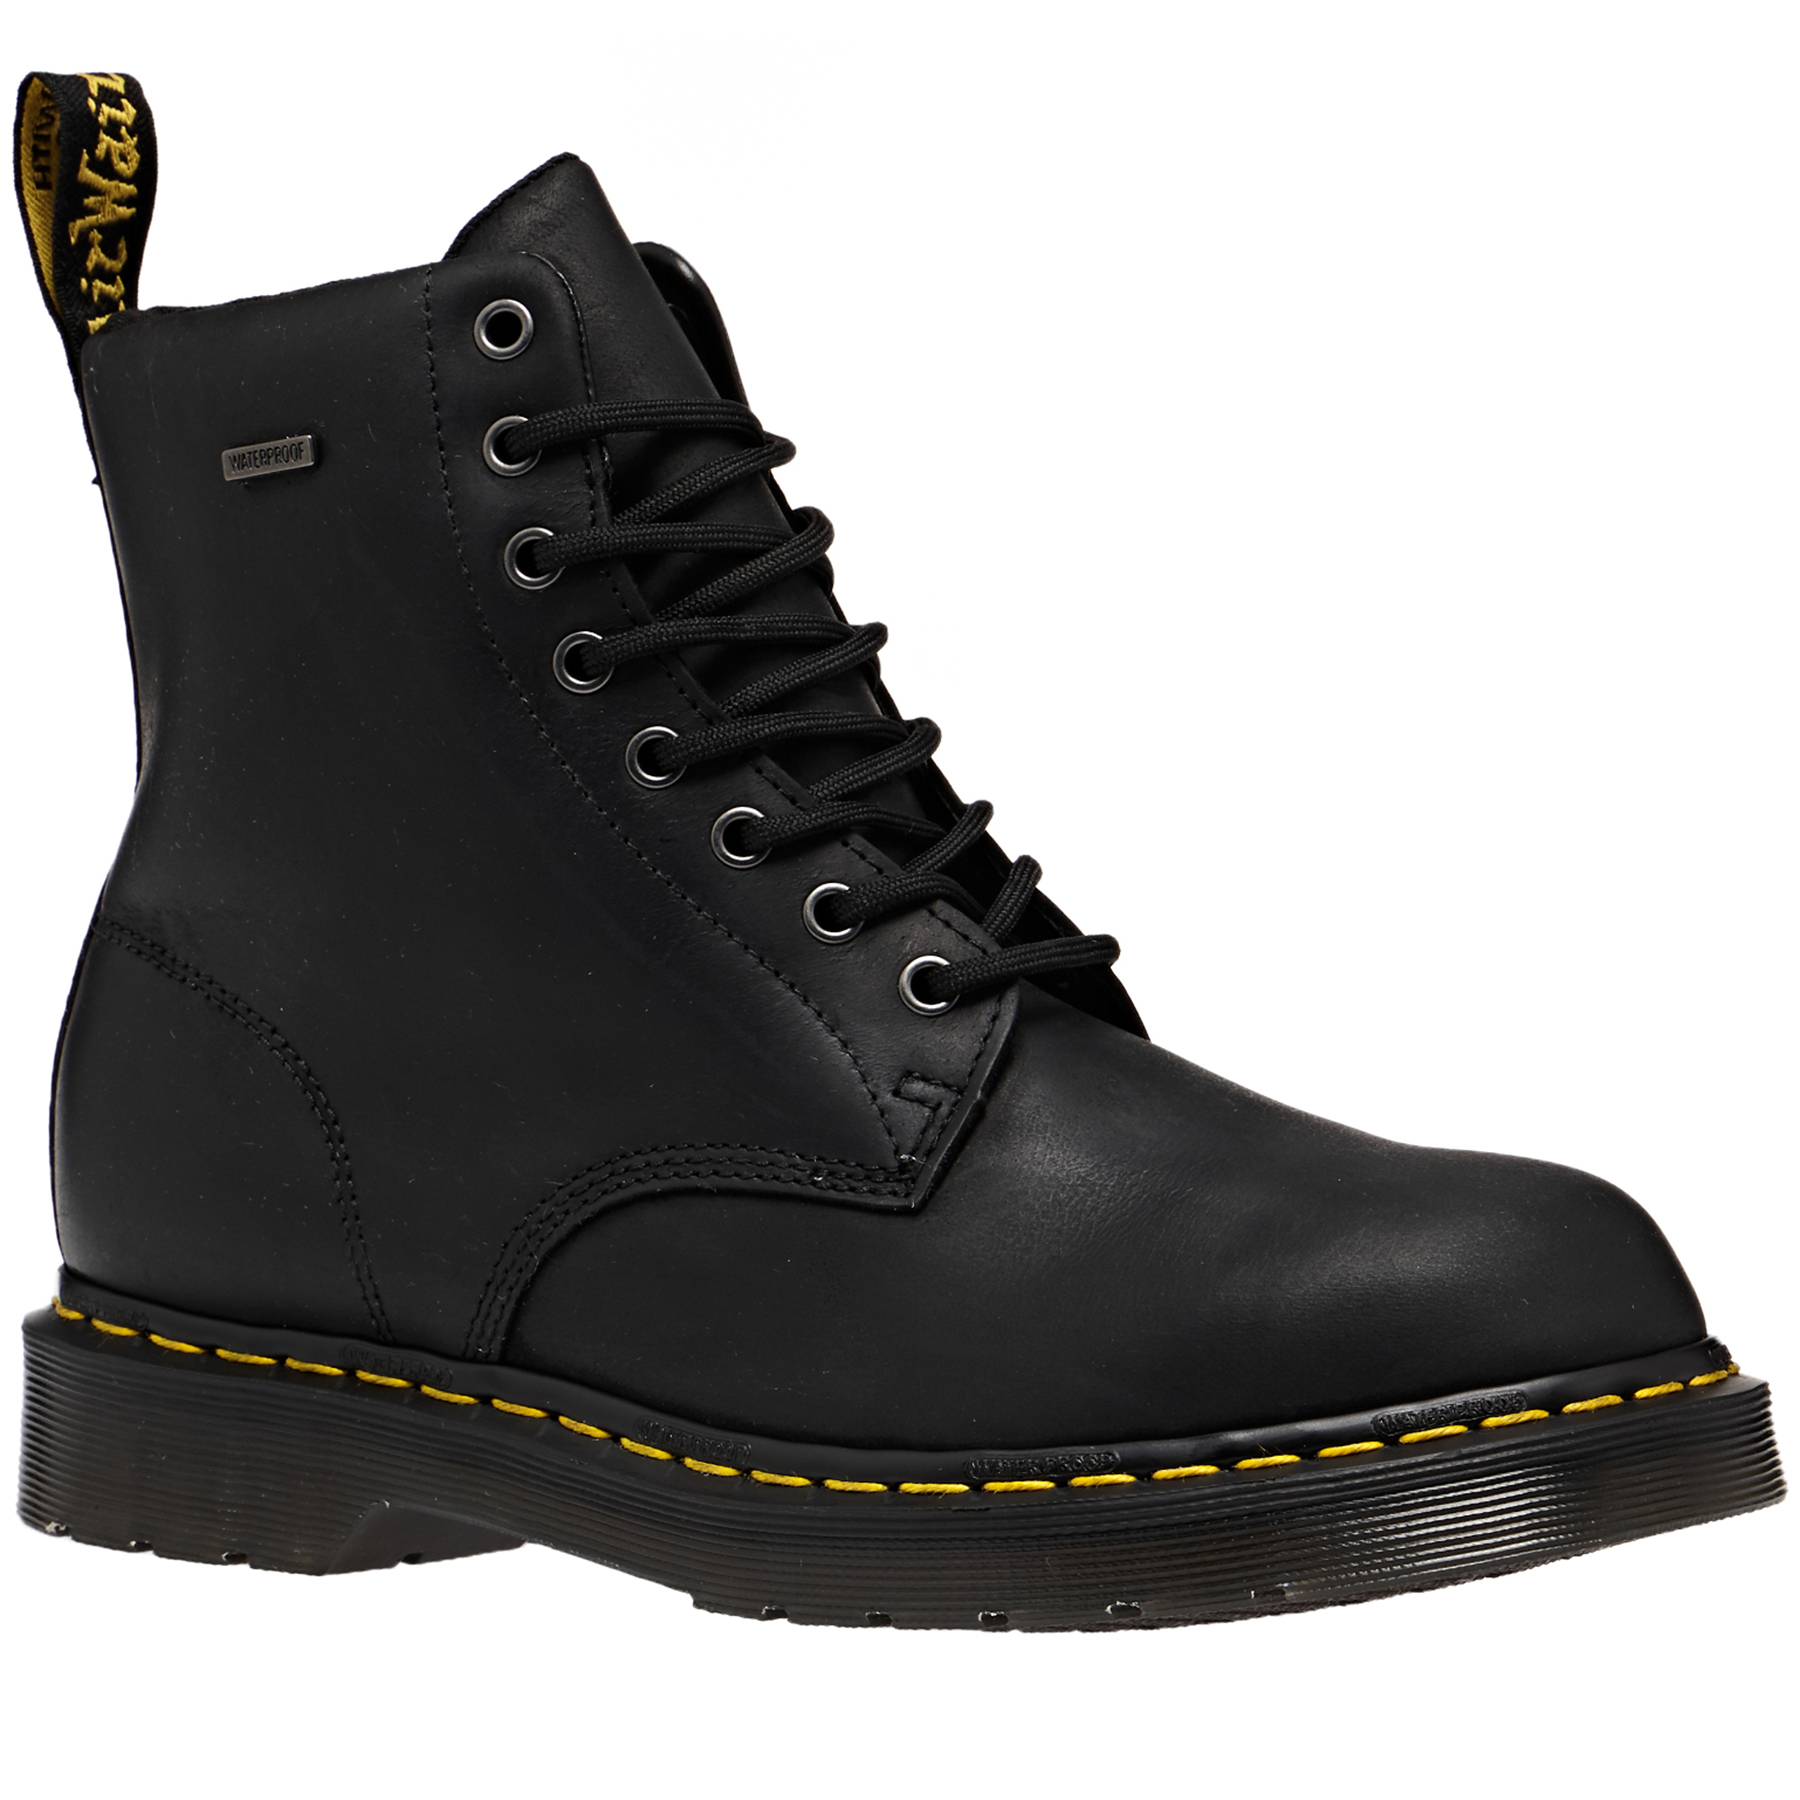 Womens Boots available from Blackleaf